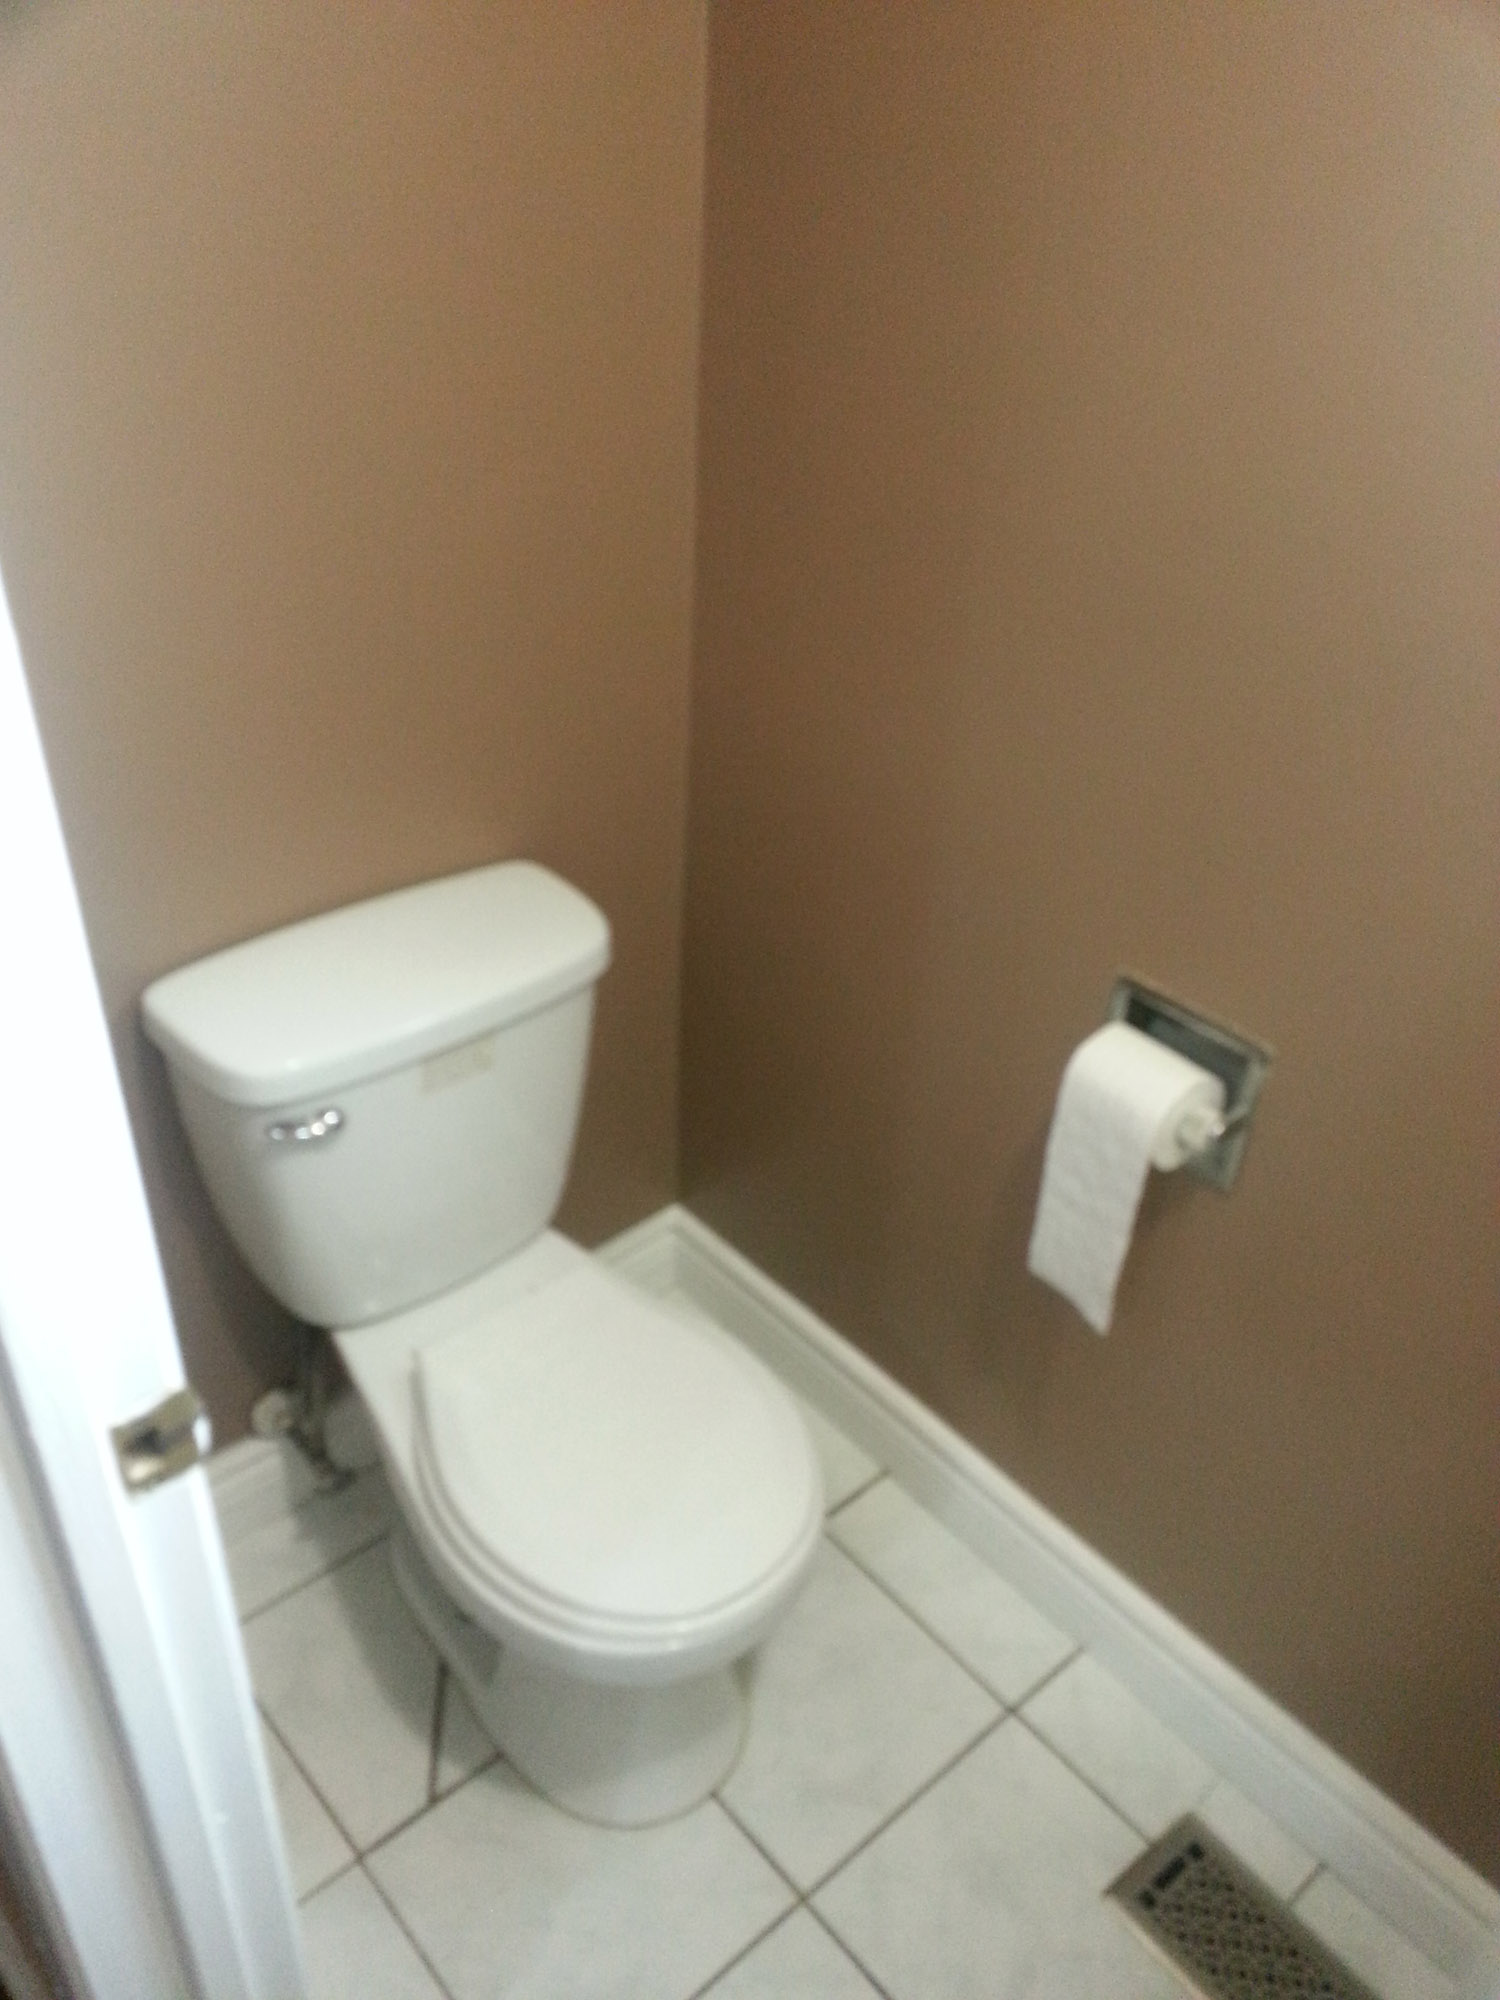 Attractive 3 Bed 1 5 Bath Townhome For Rent In Heart Of Brampton - 09 01 13 08 02